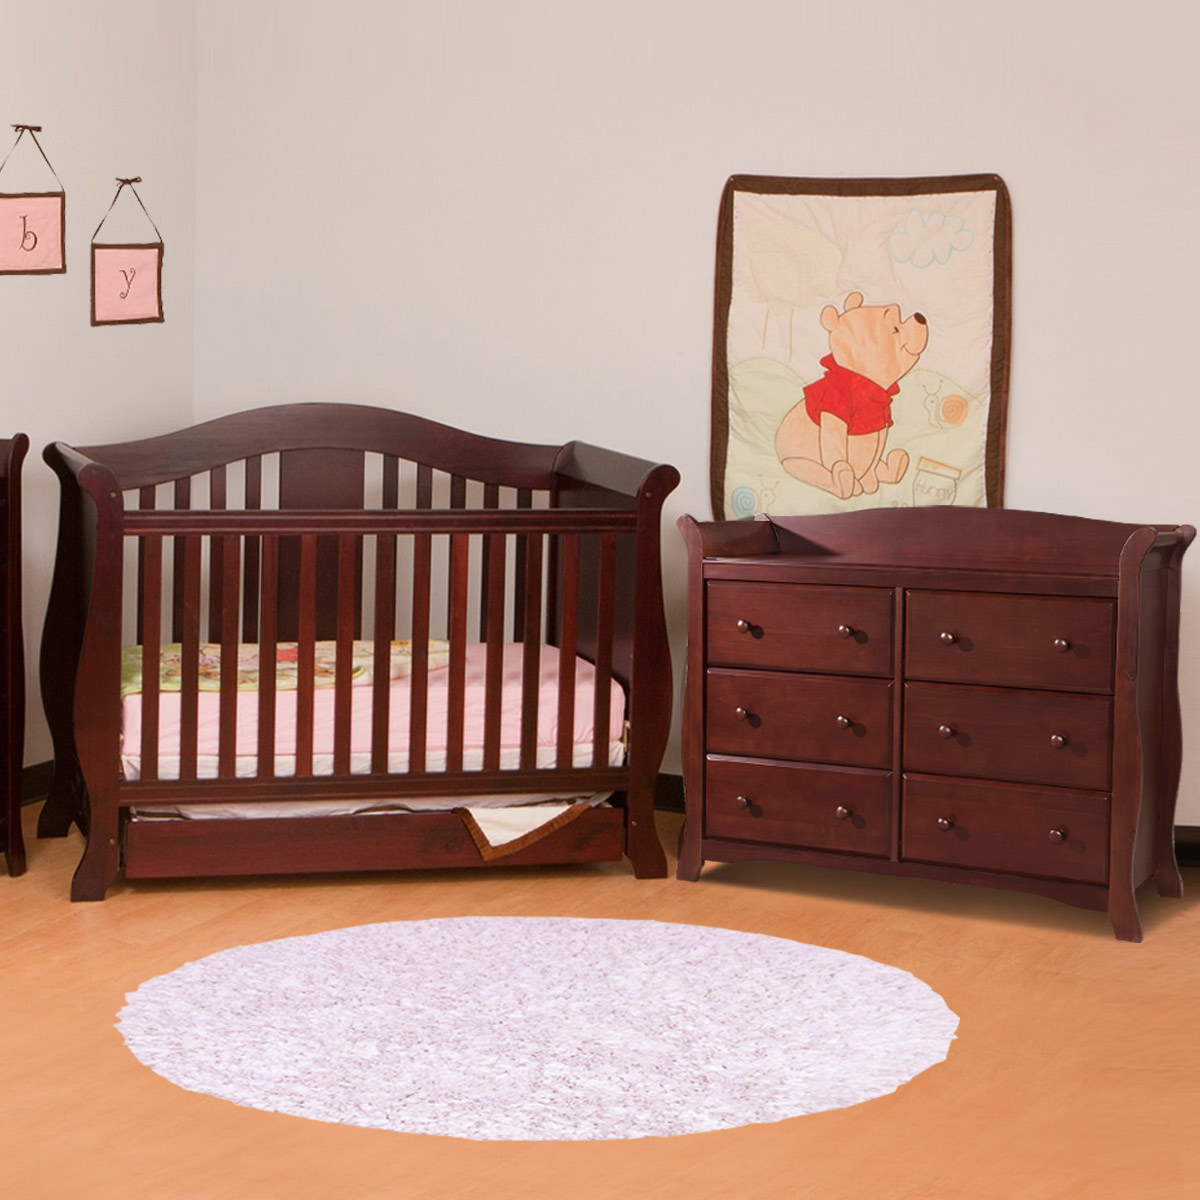 Storkcraft 2 Piece Nursery Set Vittoria Convertible Crib And Avalon 5 Drawer Dresser In Black Free Shipping